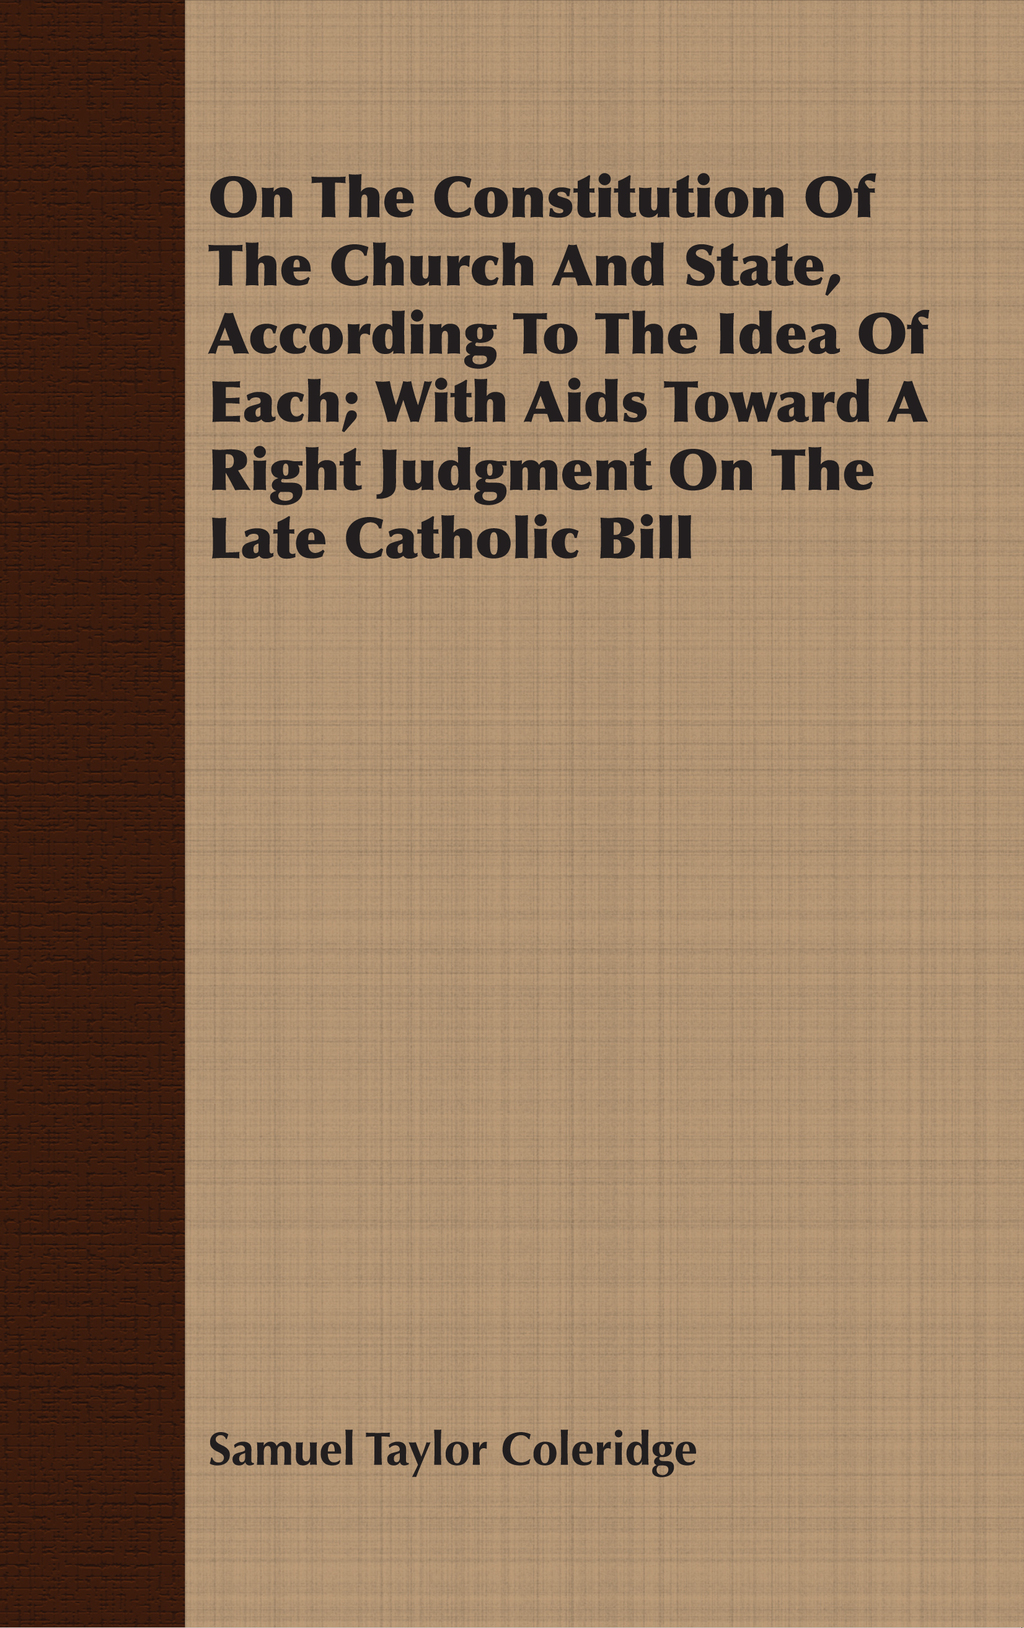 On The Constitution Of The Church And State, According To The Idea Of Each; With Aids Toward A Right Judgment On The Late Catholic Bill (ebook) eBooks